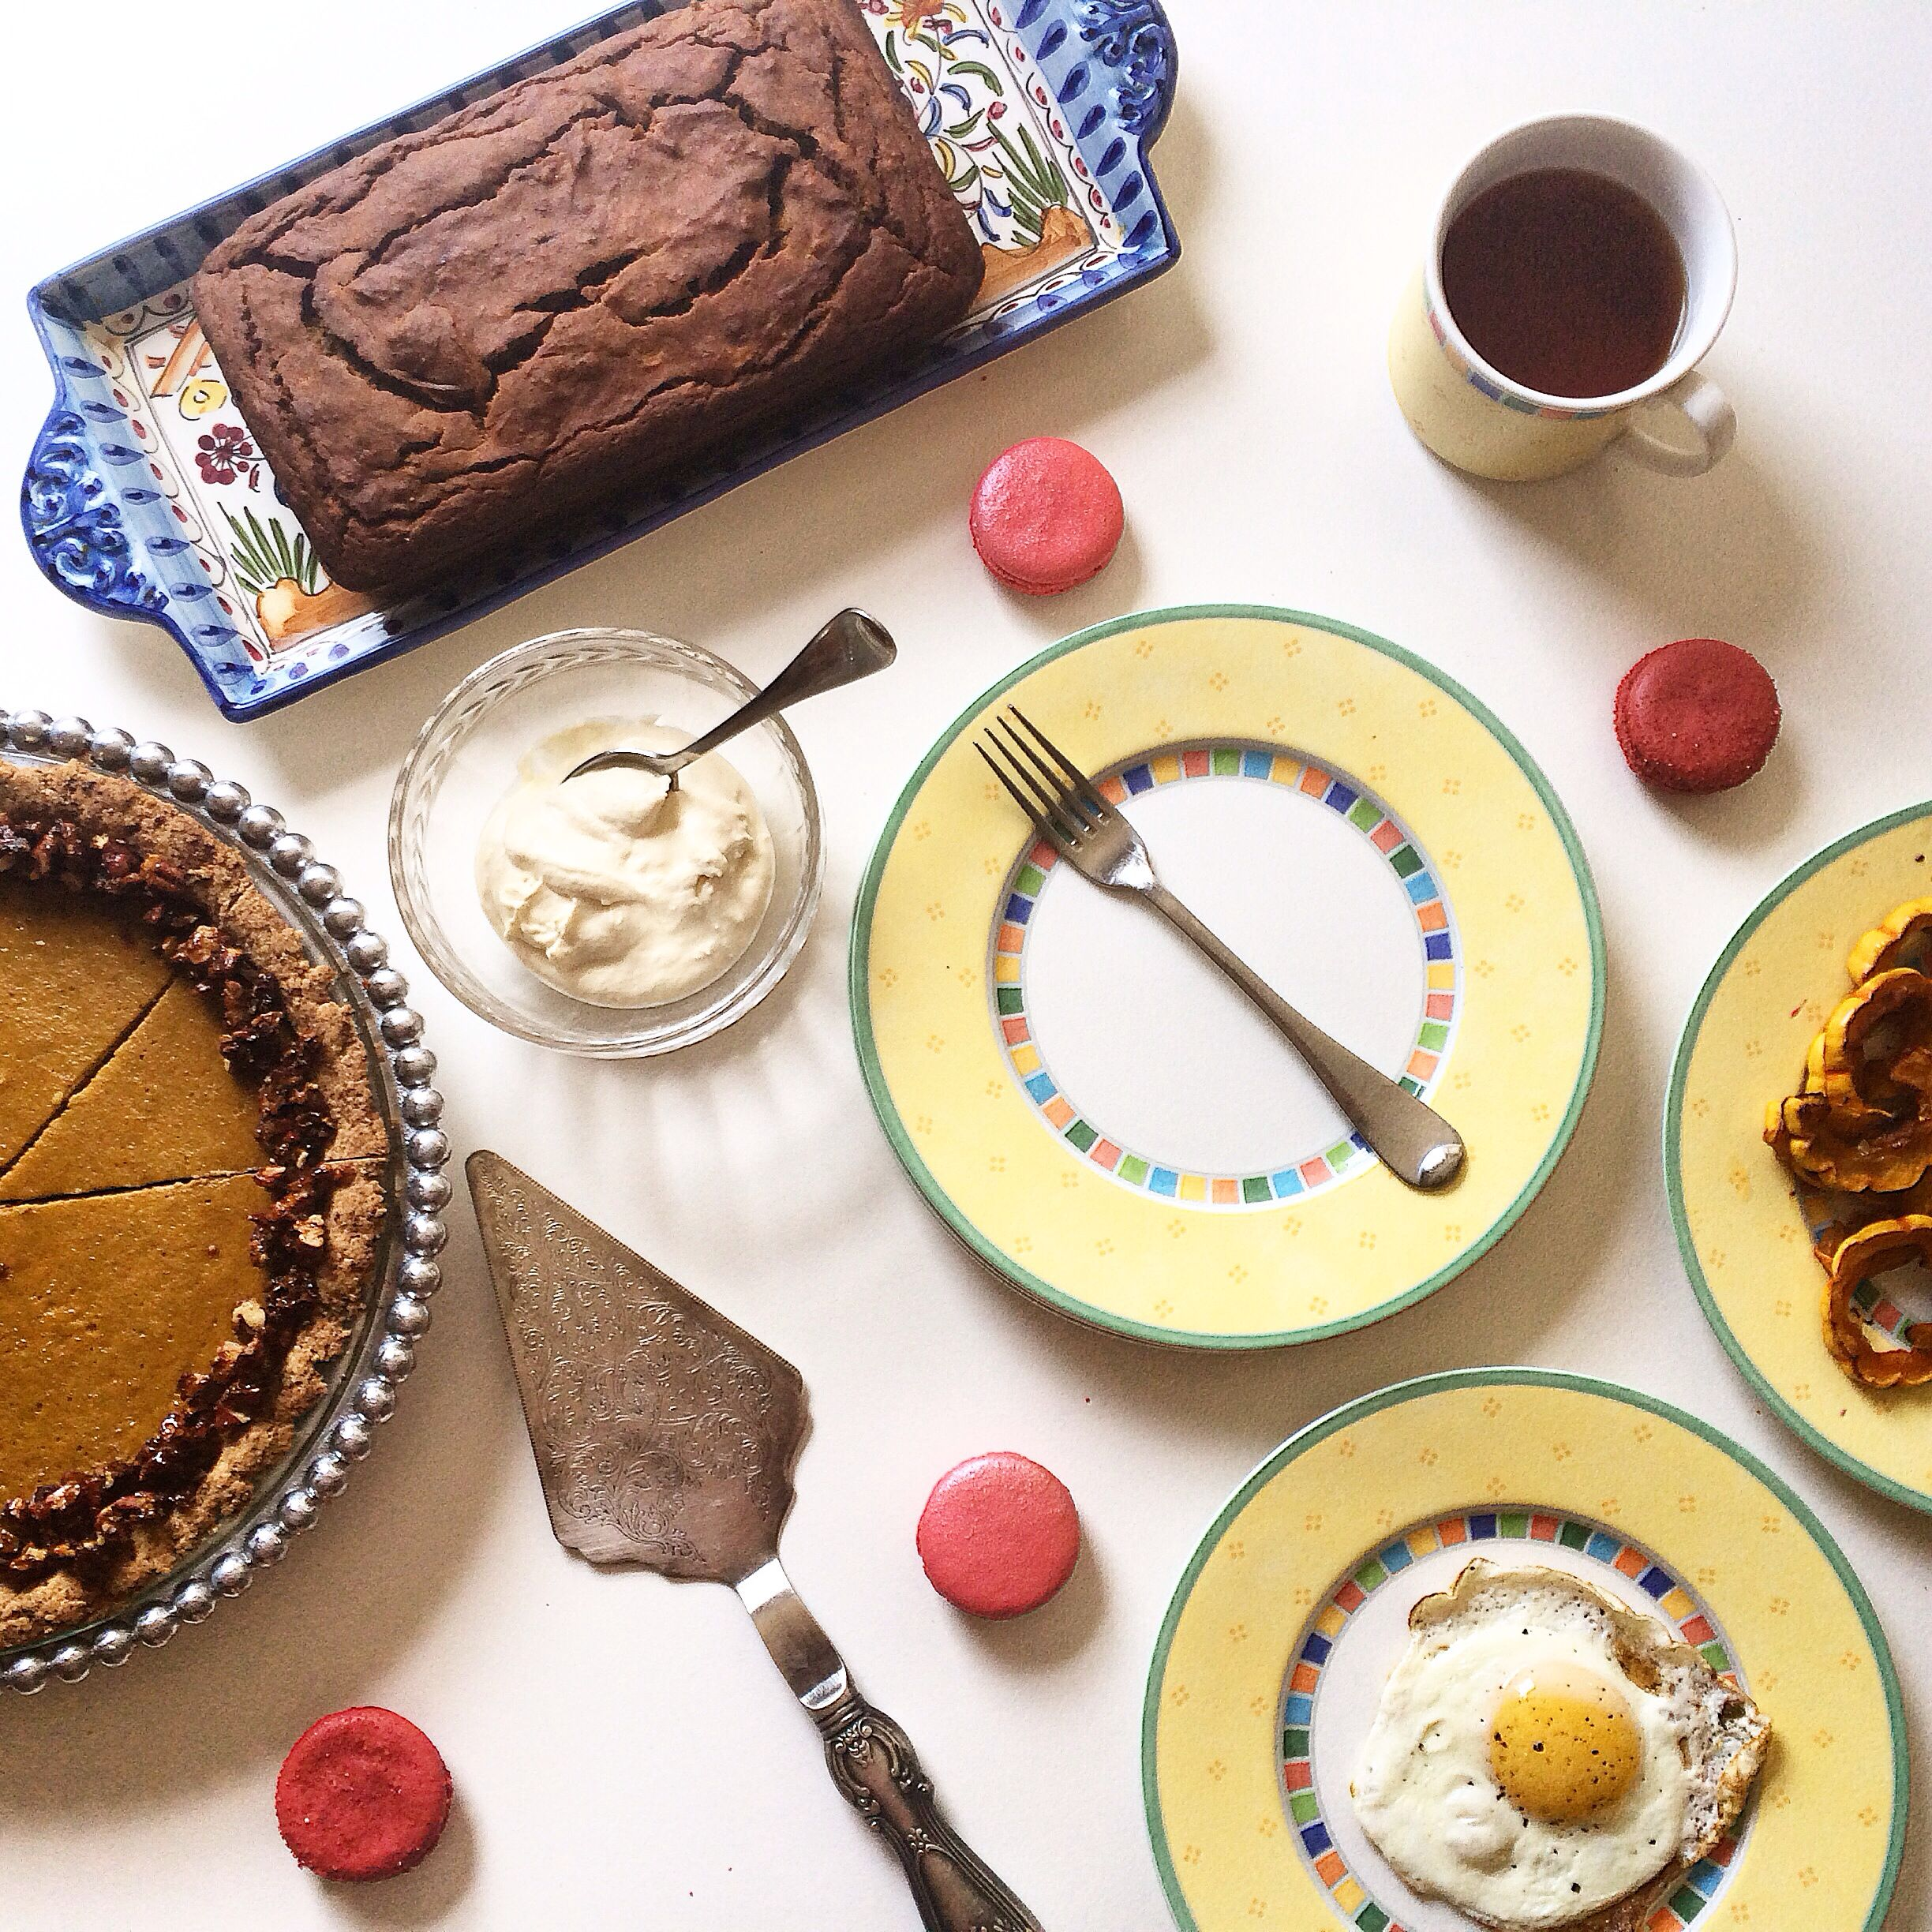 Thanksgiving brunch with Amanda Paa's delicata squash pie and Autumn harvest bread, Tout Sweet SF macarons found at CUESA, and eggs from pasture raised hens.